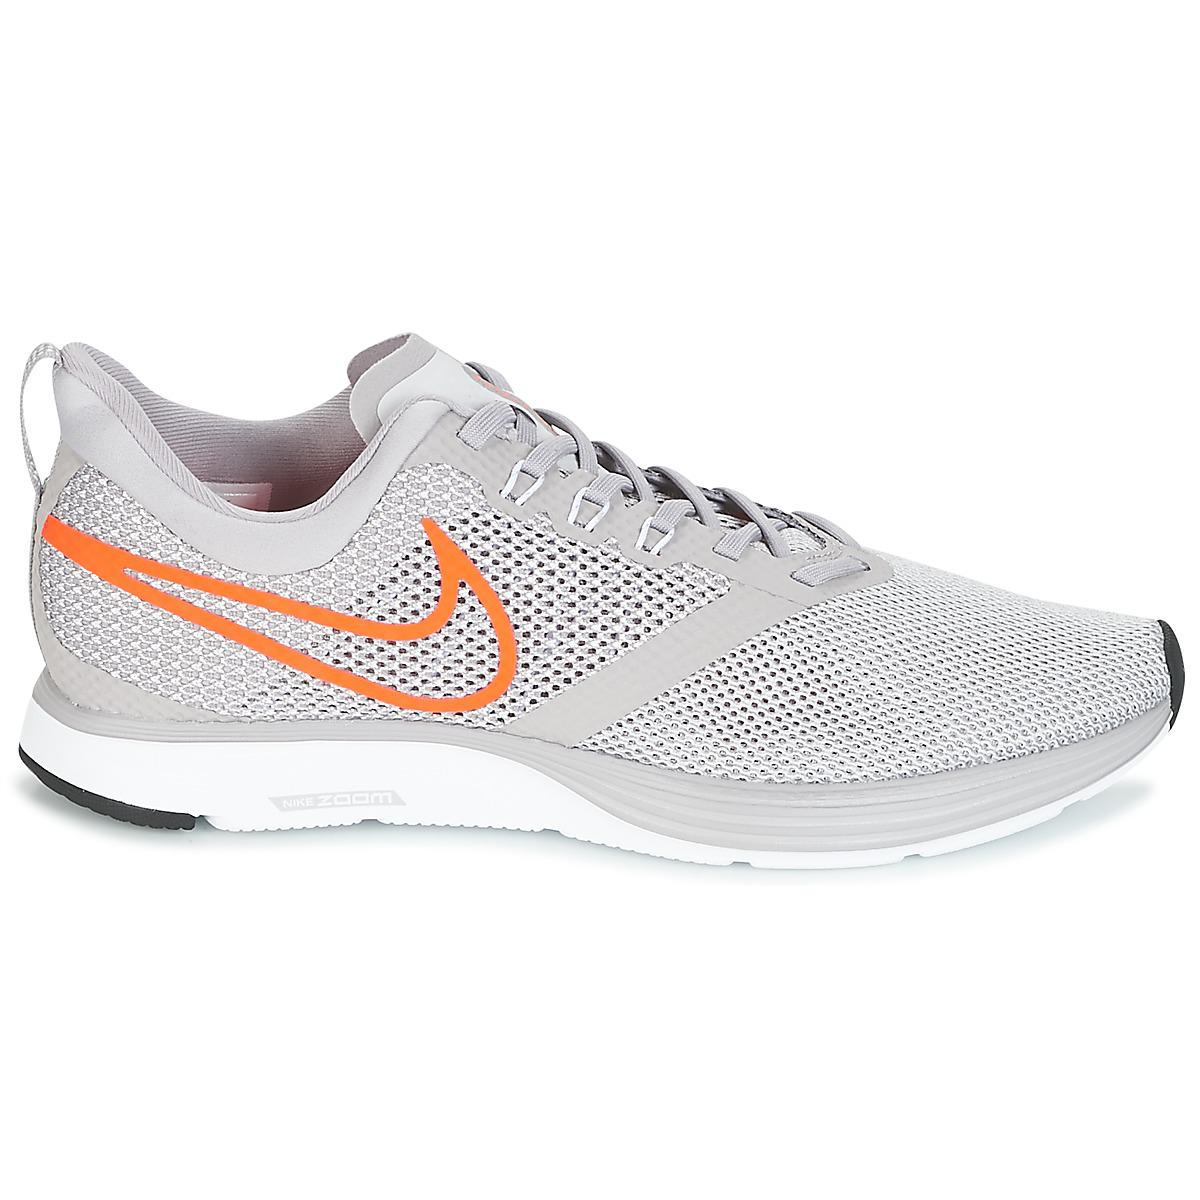 6bd3430827c1b0 Nike - Gray Zoom Strike Running Trainers for Men - Lyst. View fullscreen